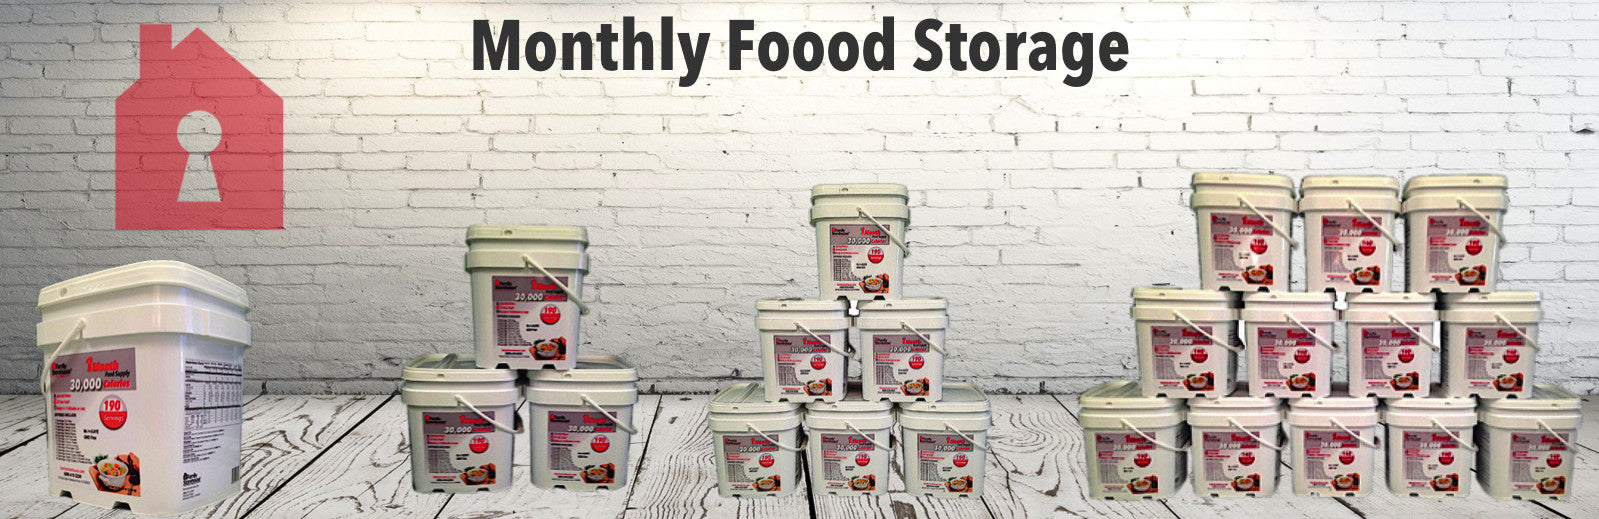 Monthly Food Storage